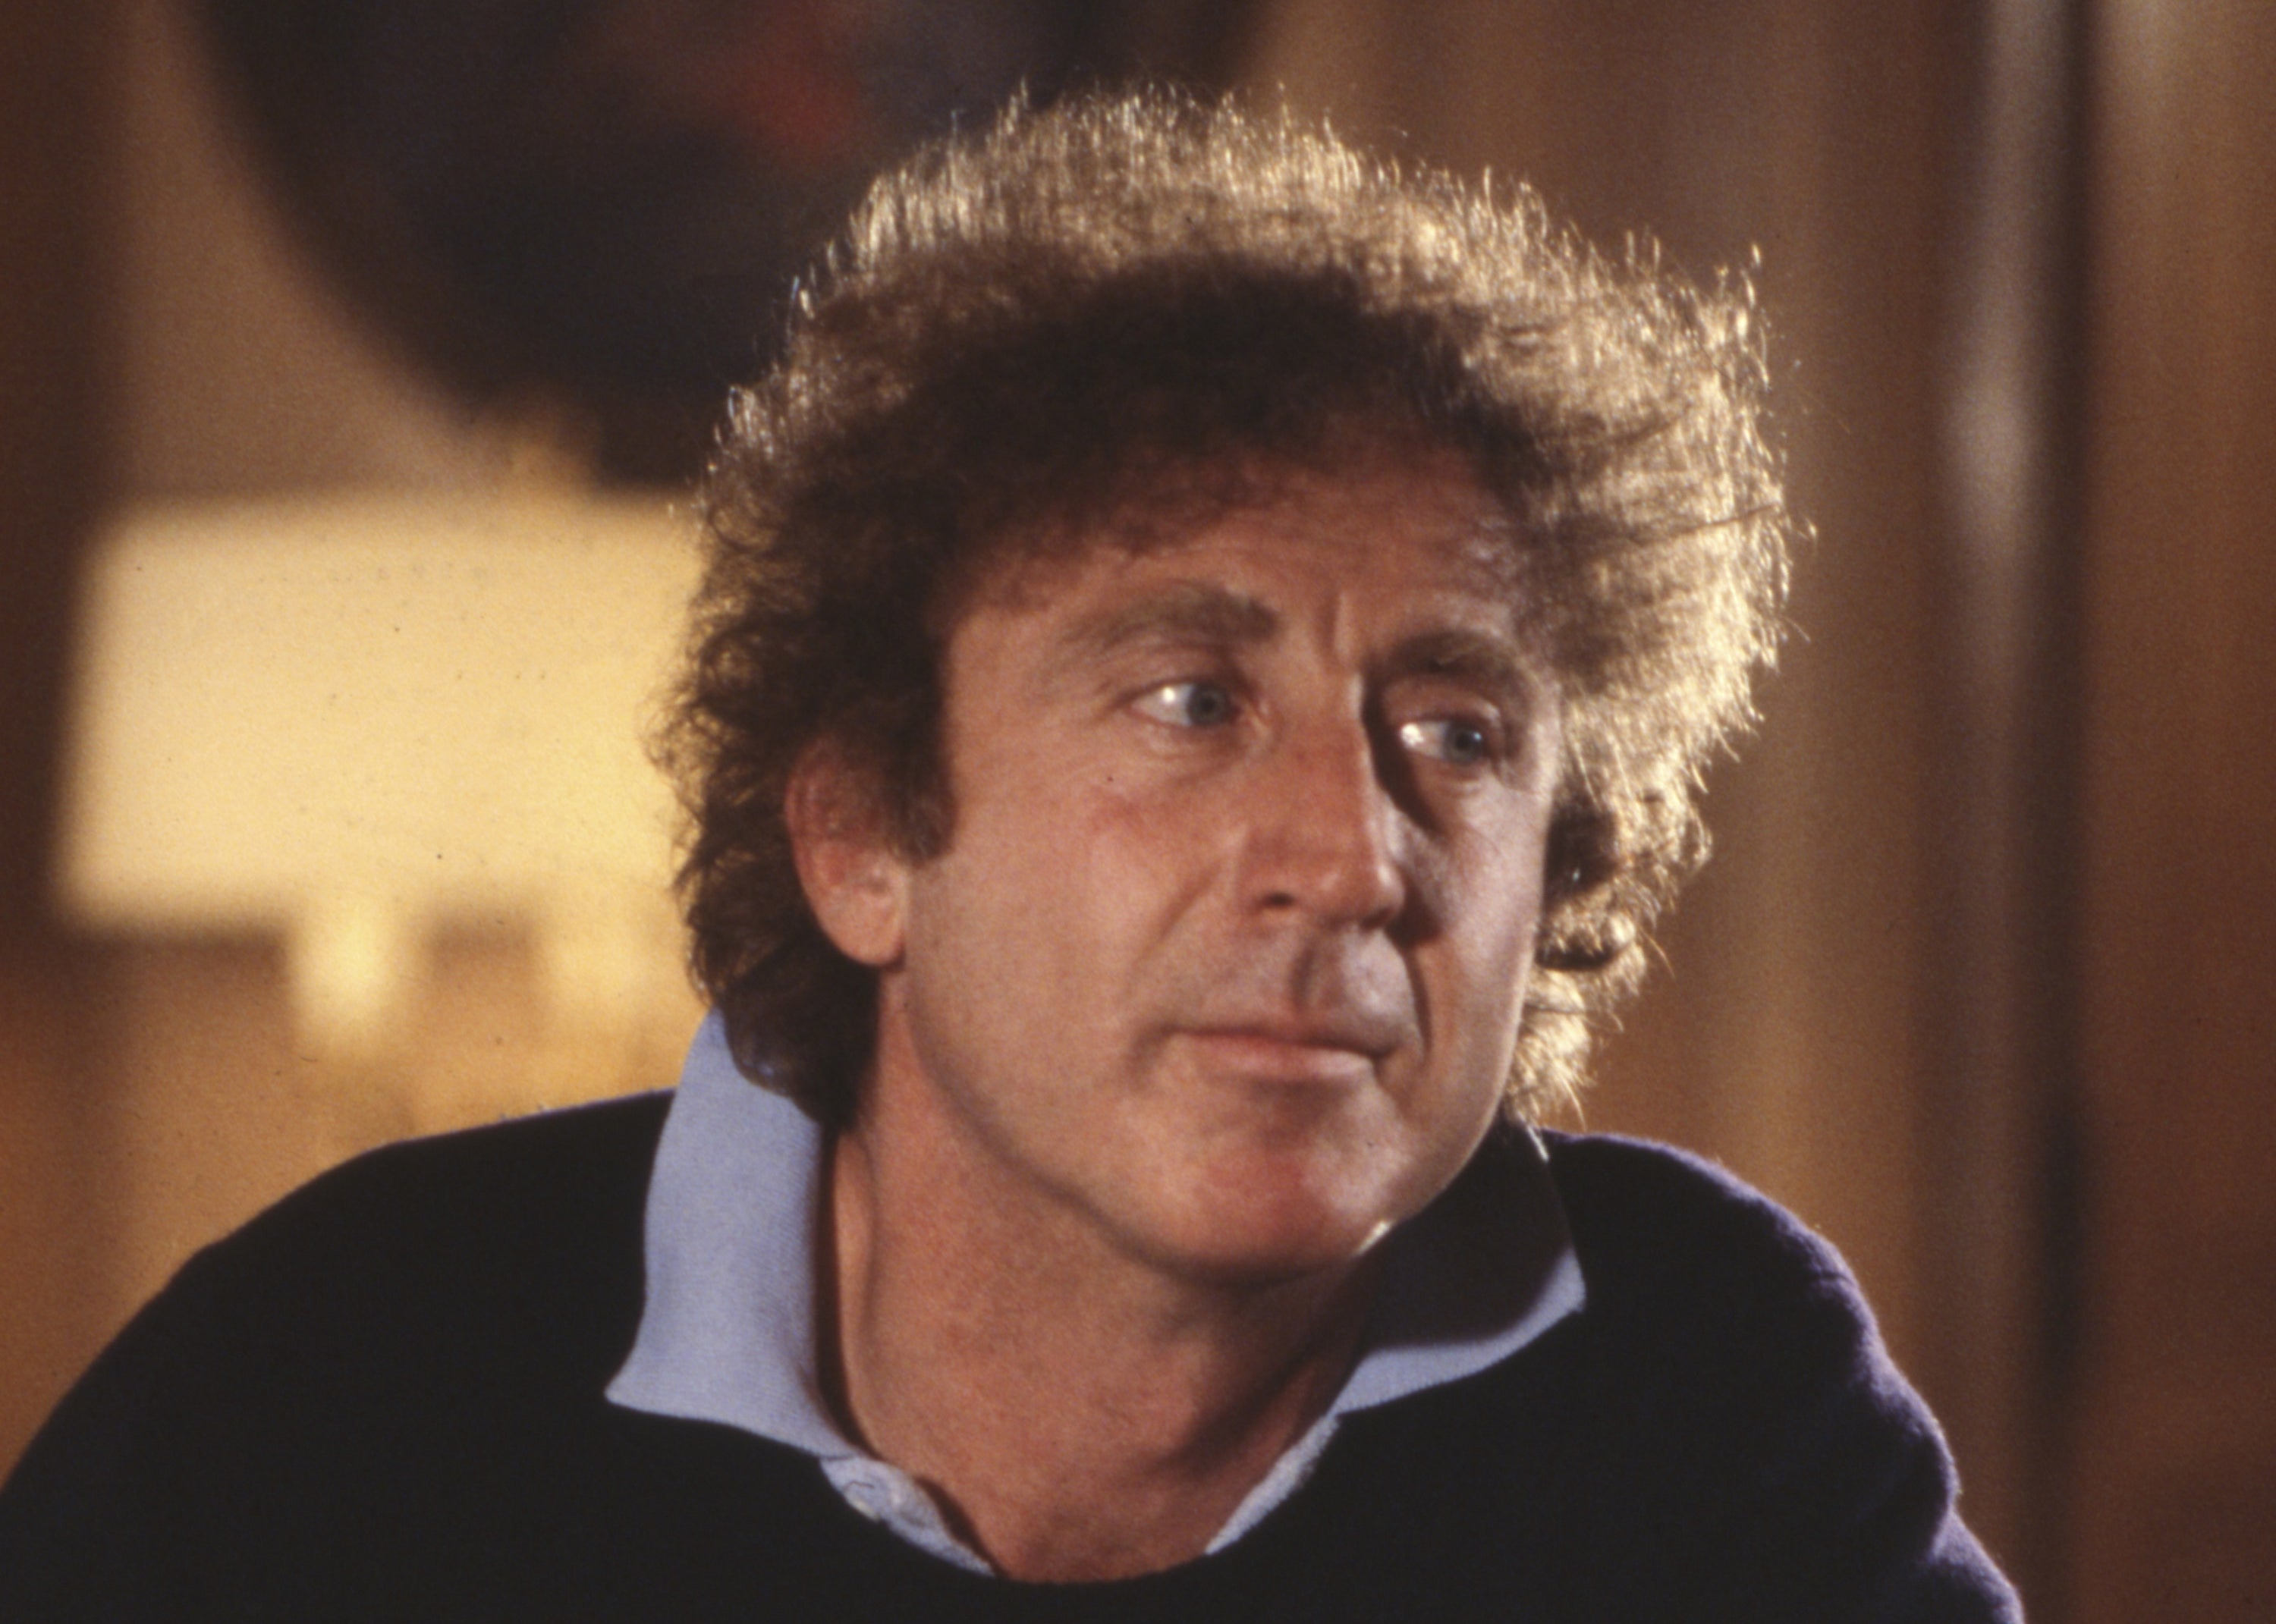 Photo of Gene Wilder gazing off to the side